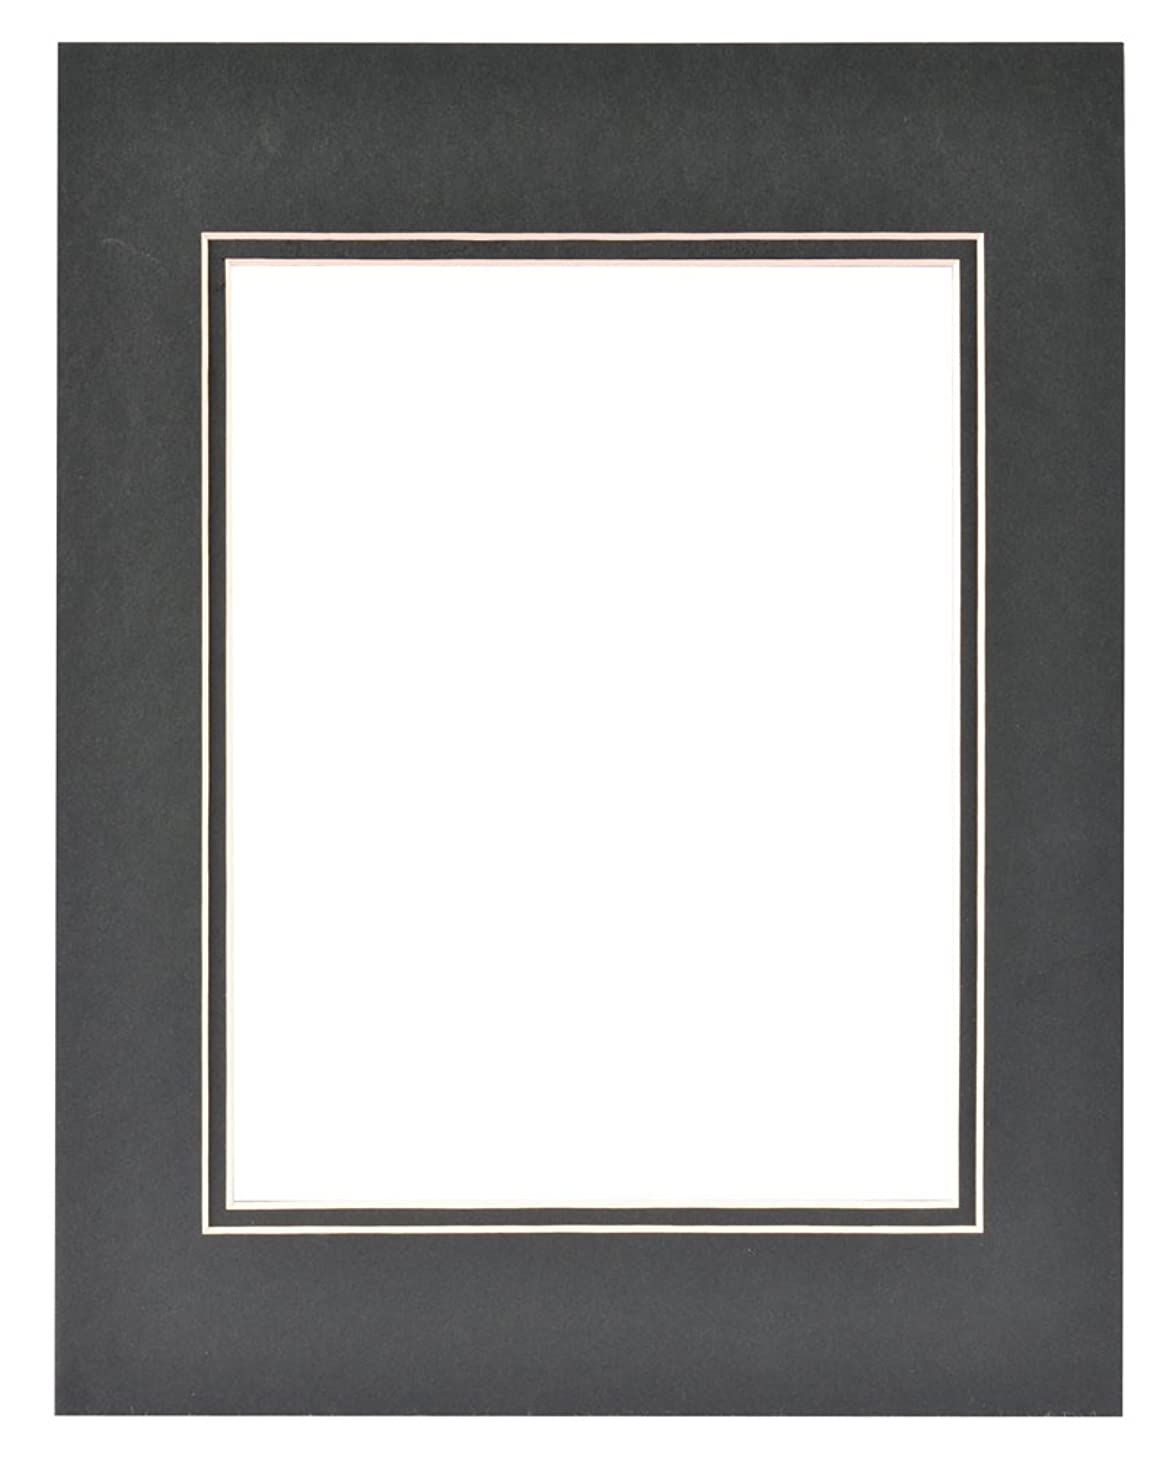 Gallery Solutions Custom Bevel Cut Double Black Mat for 11x14 Picture Frame with 8x10 Opening